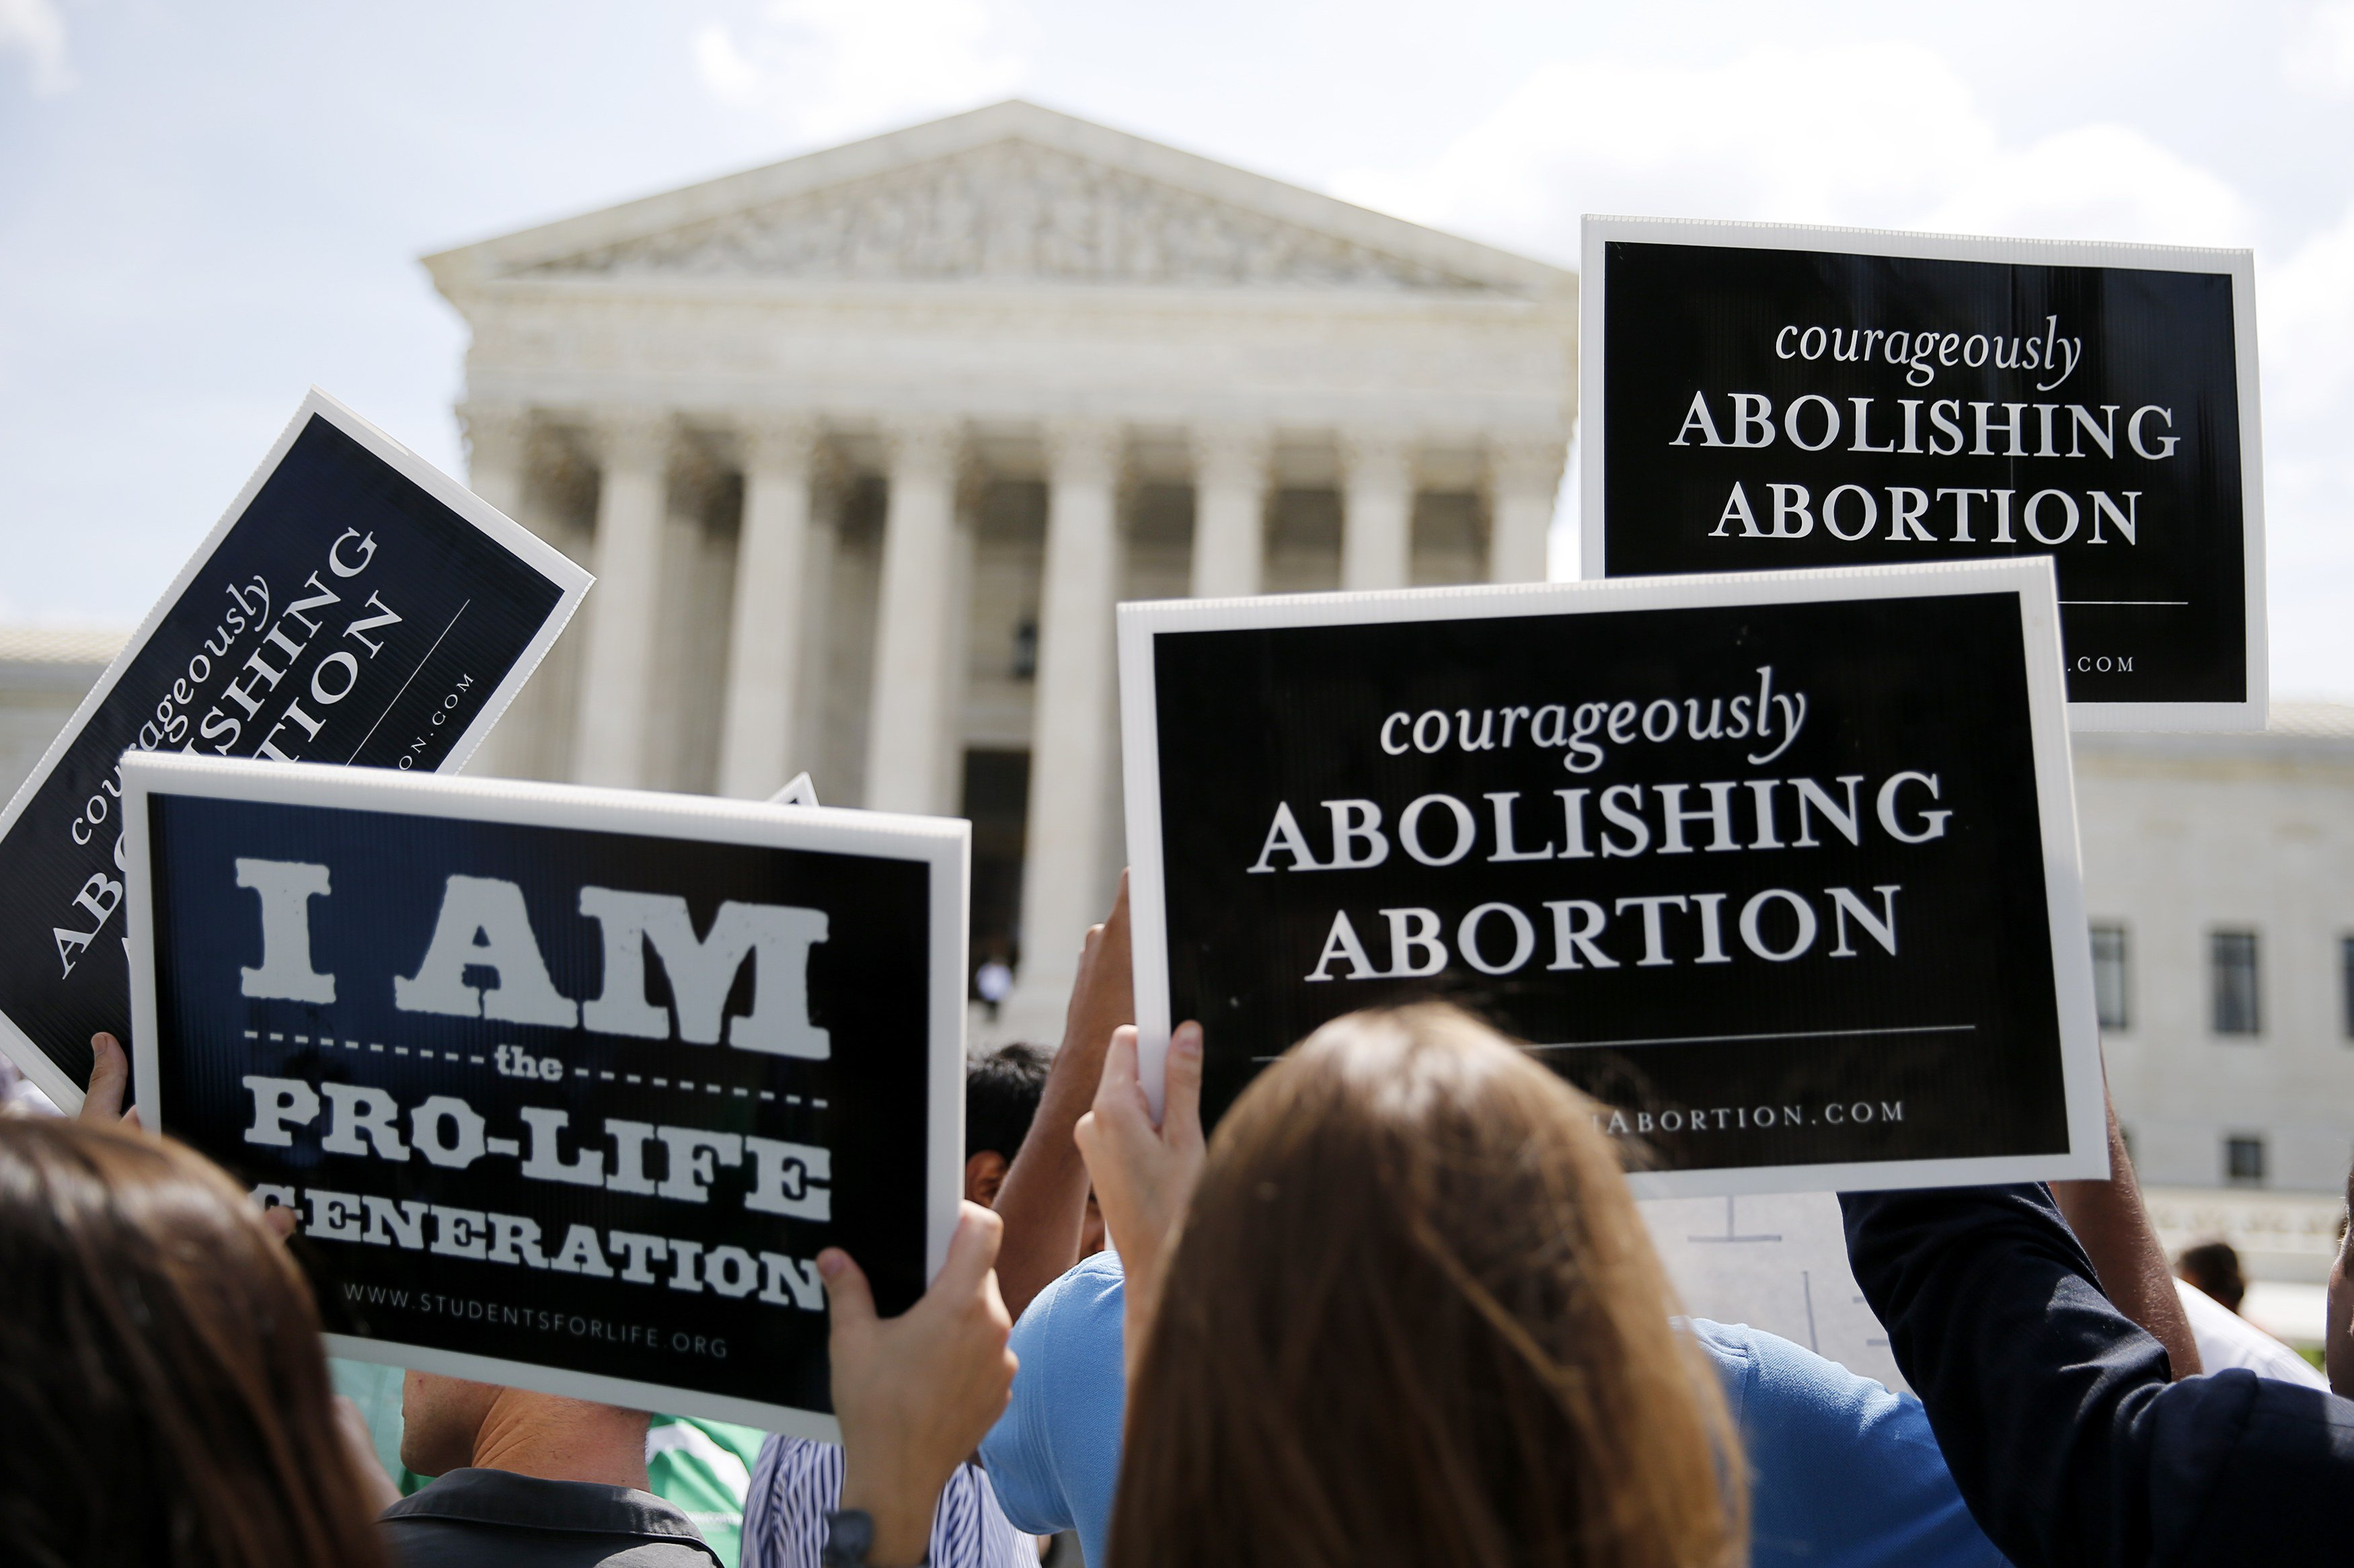 Anti-abortion protestors celebrate the U.S. Supreme Court's ruling striking down a Massachusetts law that mandated a protective buffer zone around abortion clinics,  outside the Supreme Court in Washington June 26, 2014.